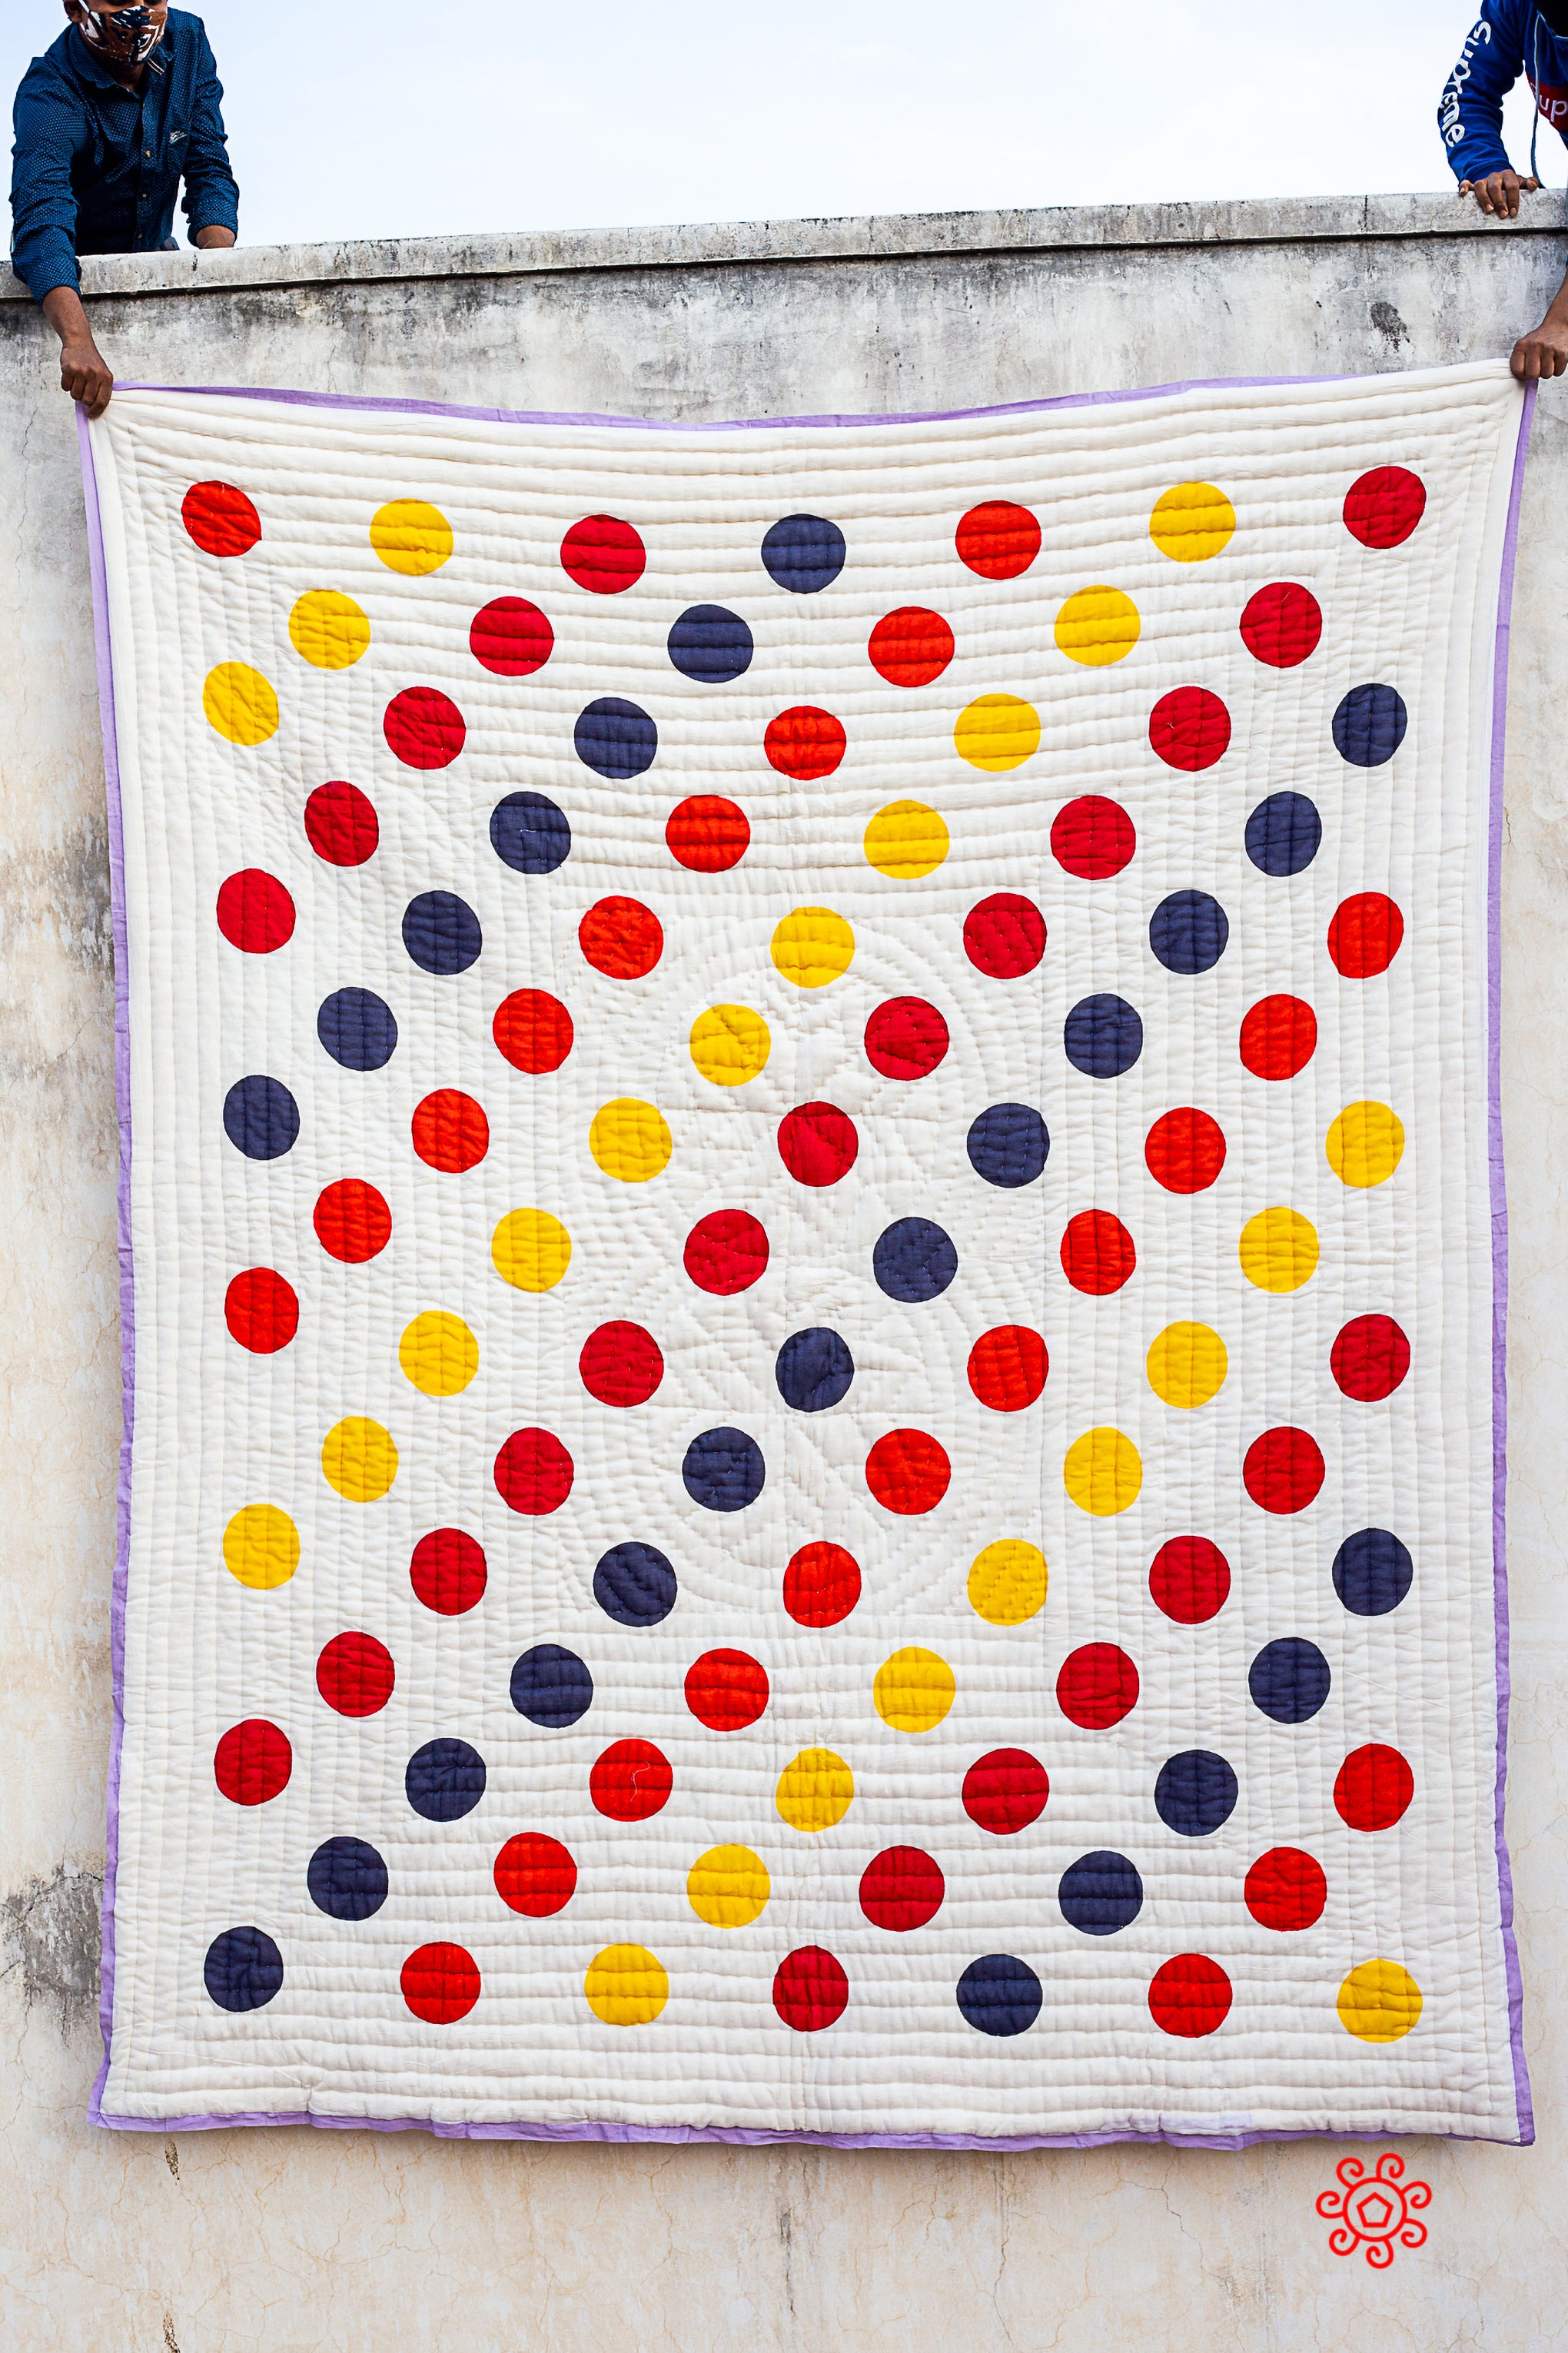 Queen Quilt,100 Percent Handmade, Hand Block printed Quilt, Jaipuri Quilt, Hand Quilted, Natural Cotton filling, Polka Dots QBP 401